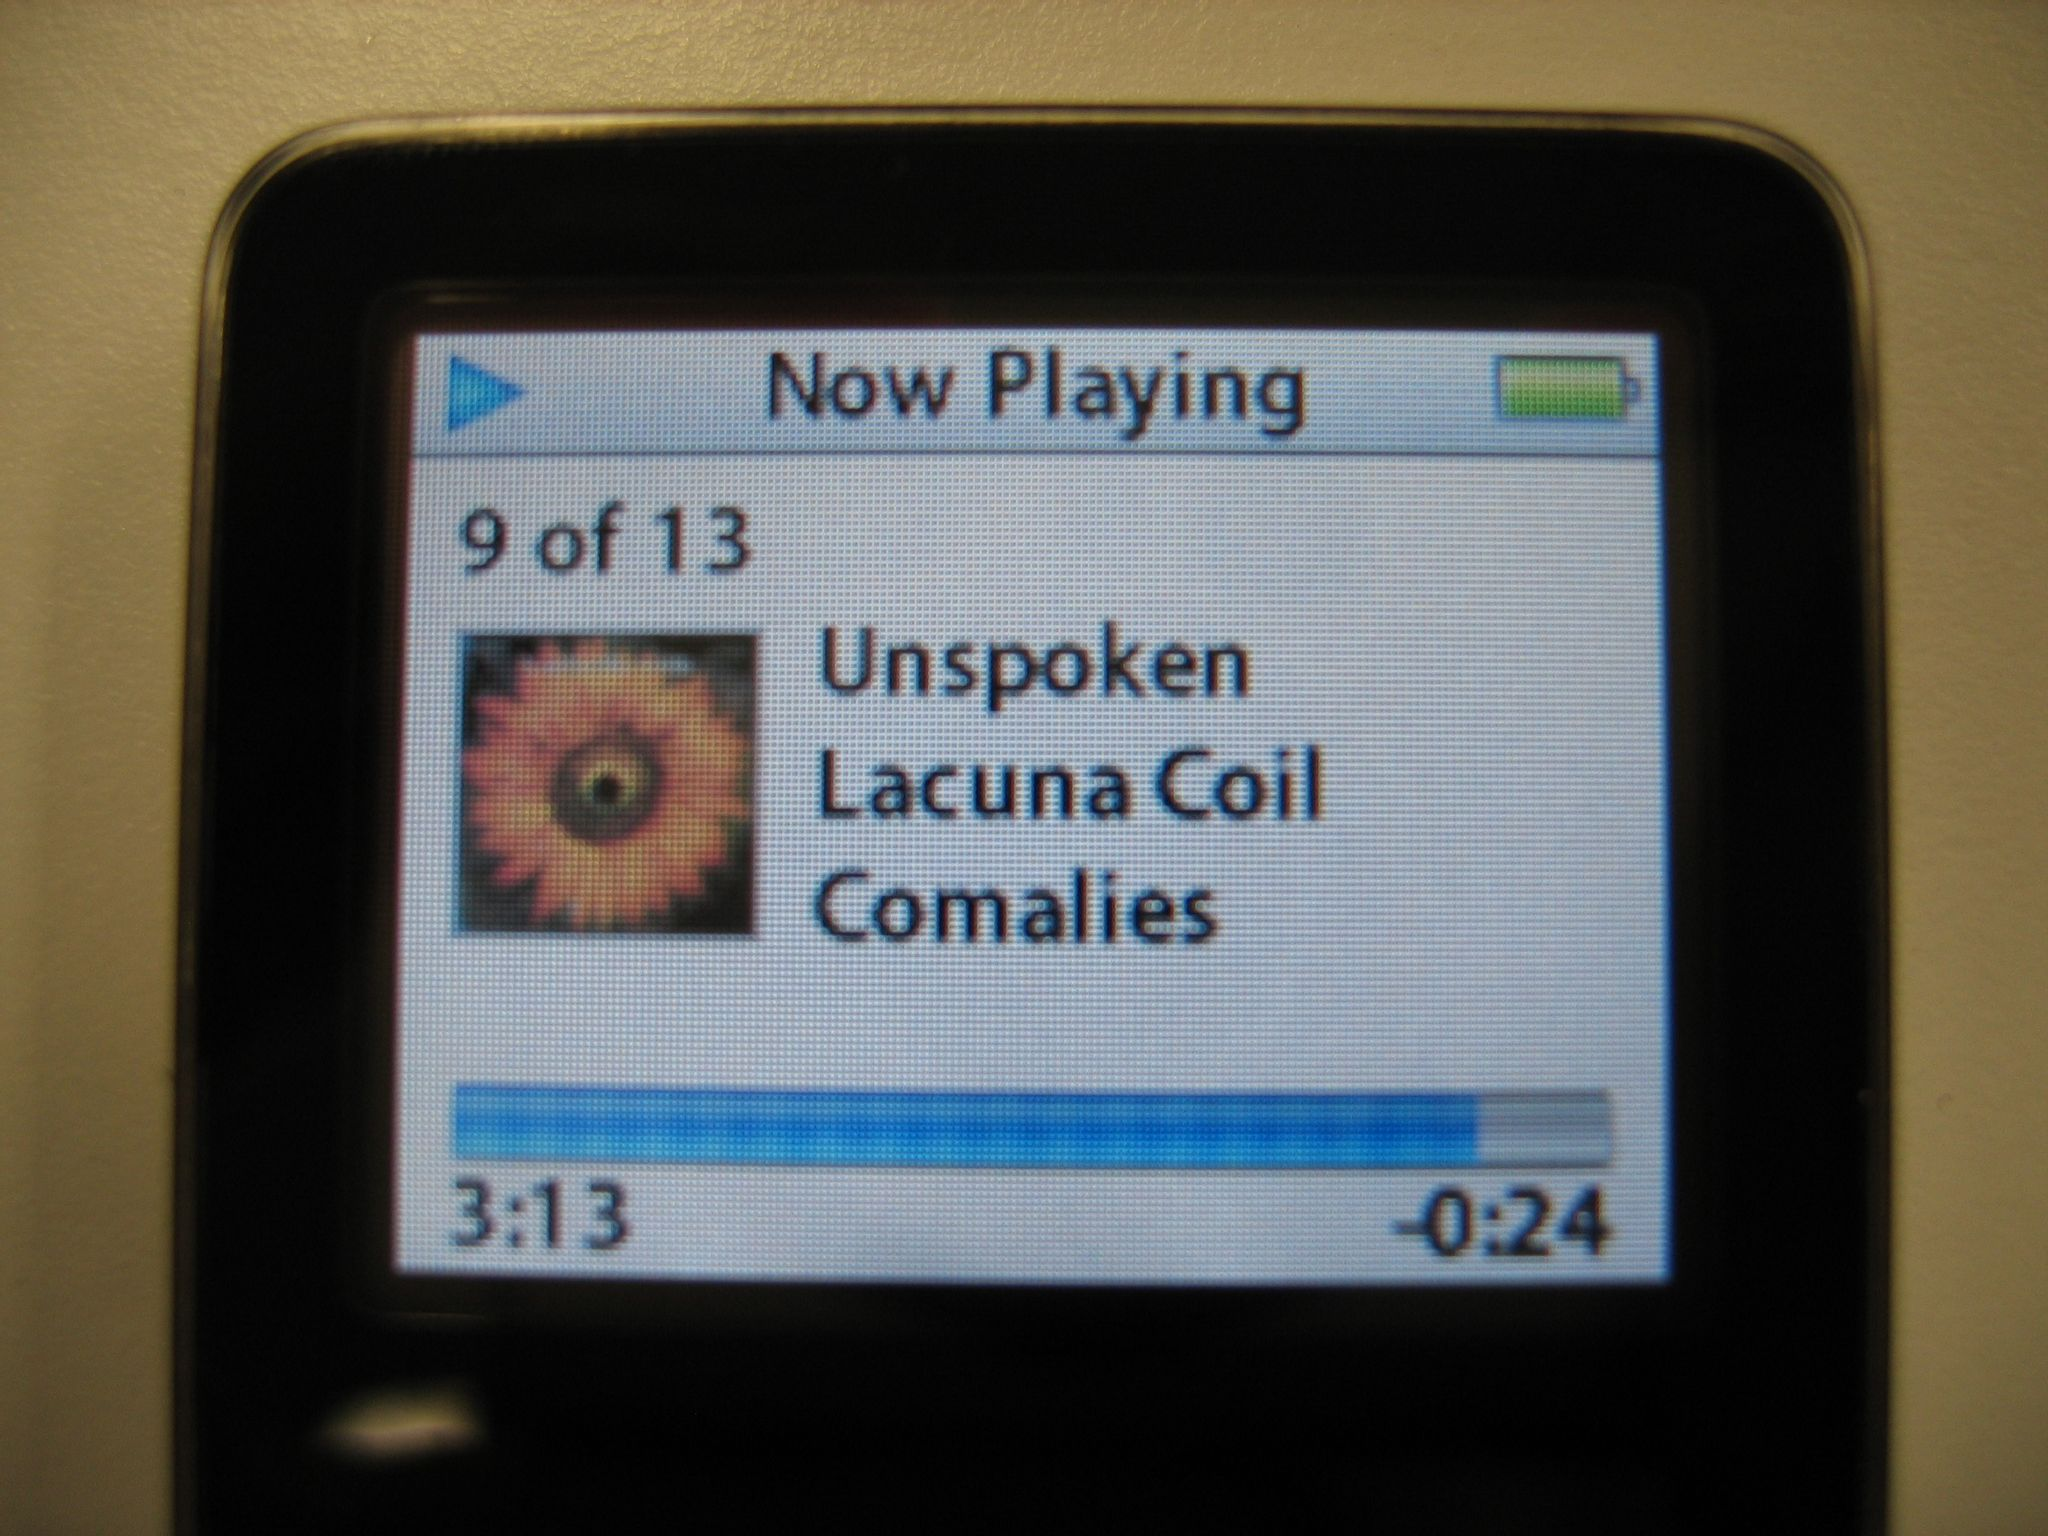 A photo of the screen of an iPod nano showing a song playing.